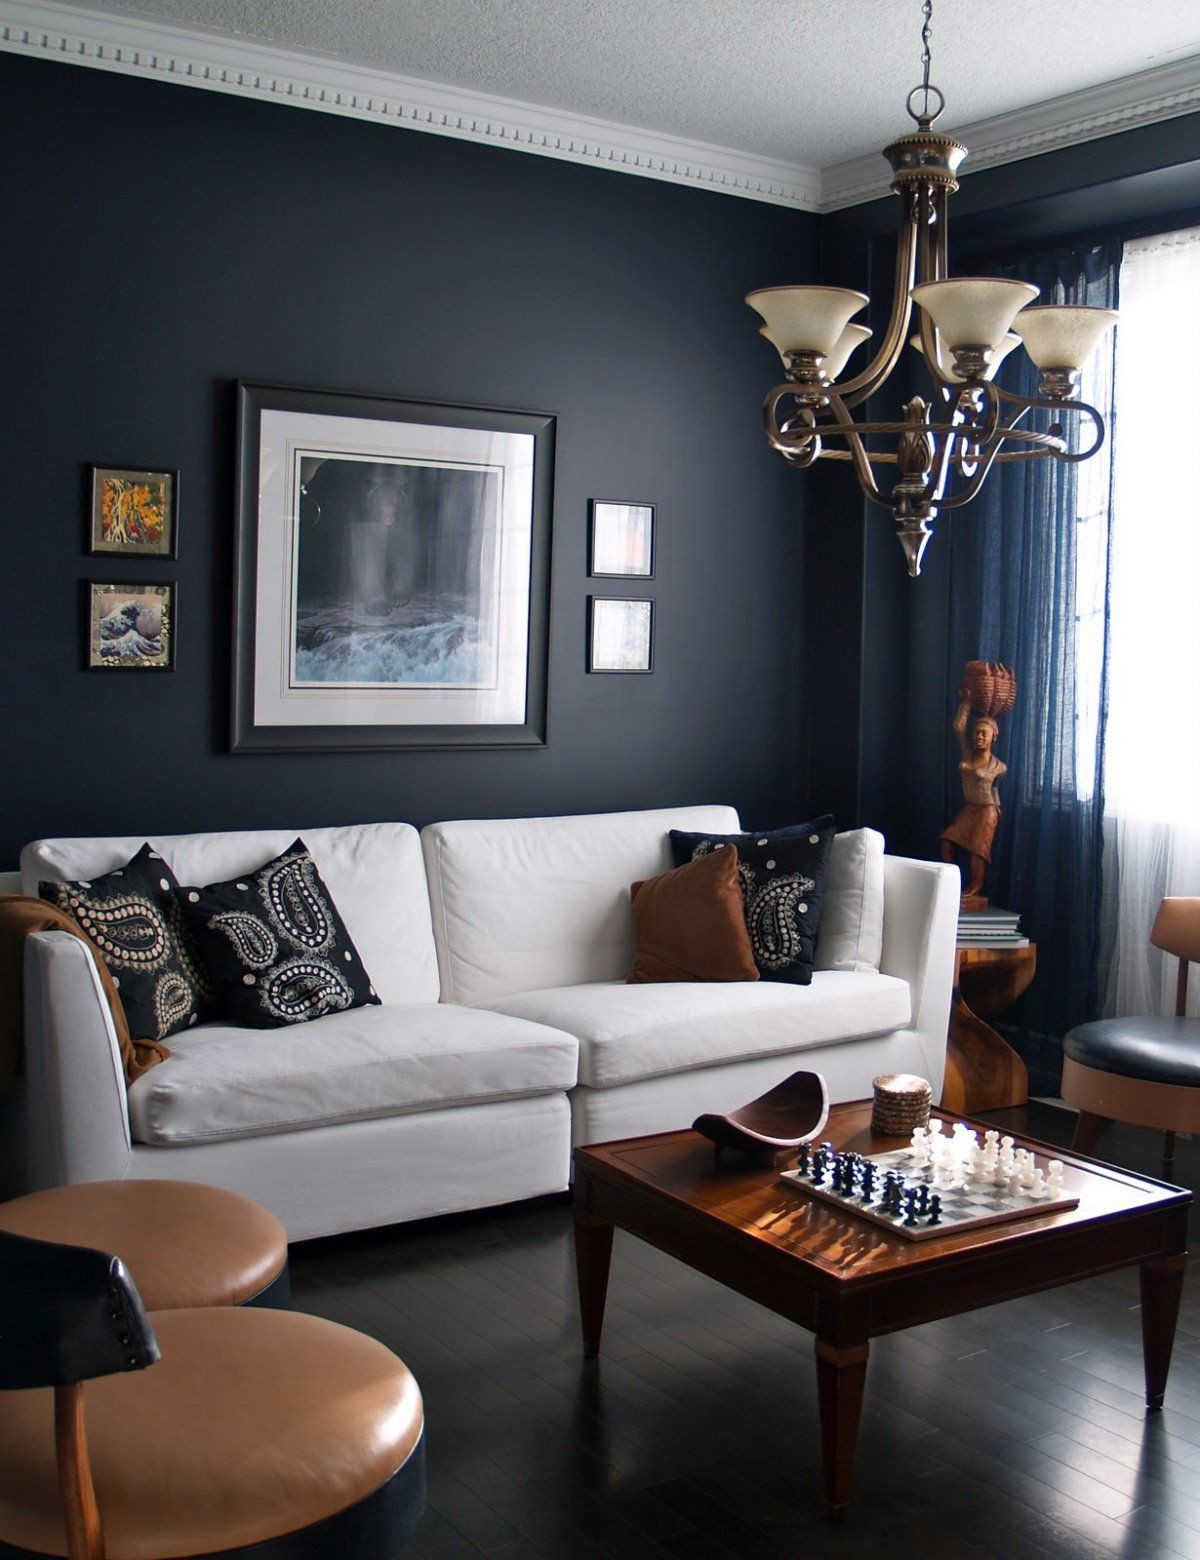 light hardwood floor living room ideas of 15 beautiful dark blue wall design ideas living room designs in living rooms with dark navy blue walls with white sofa and classic chandelier